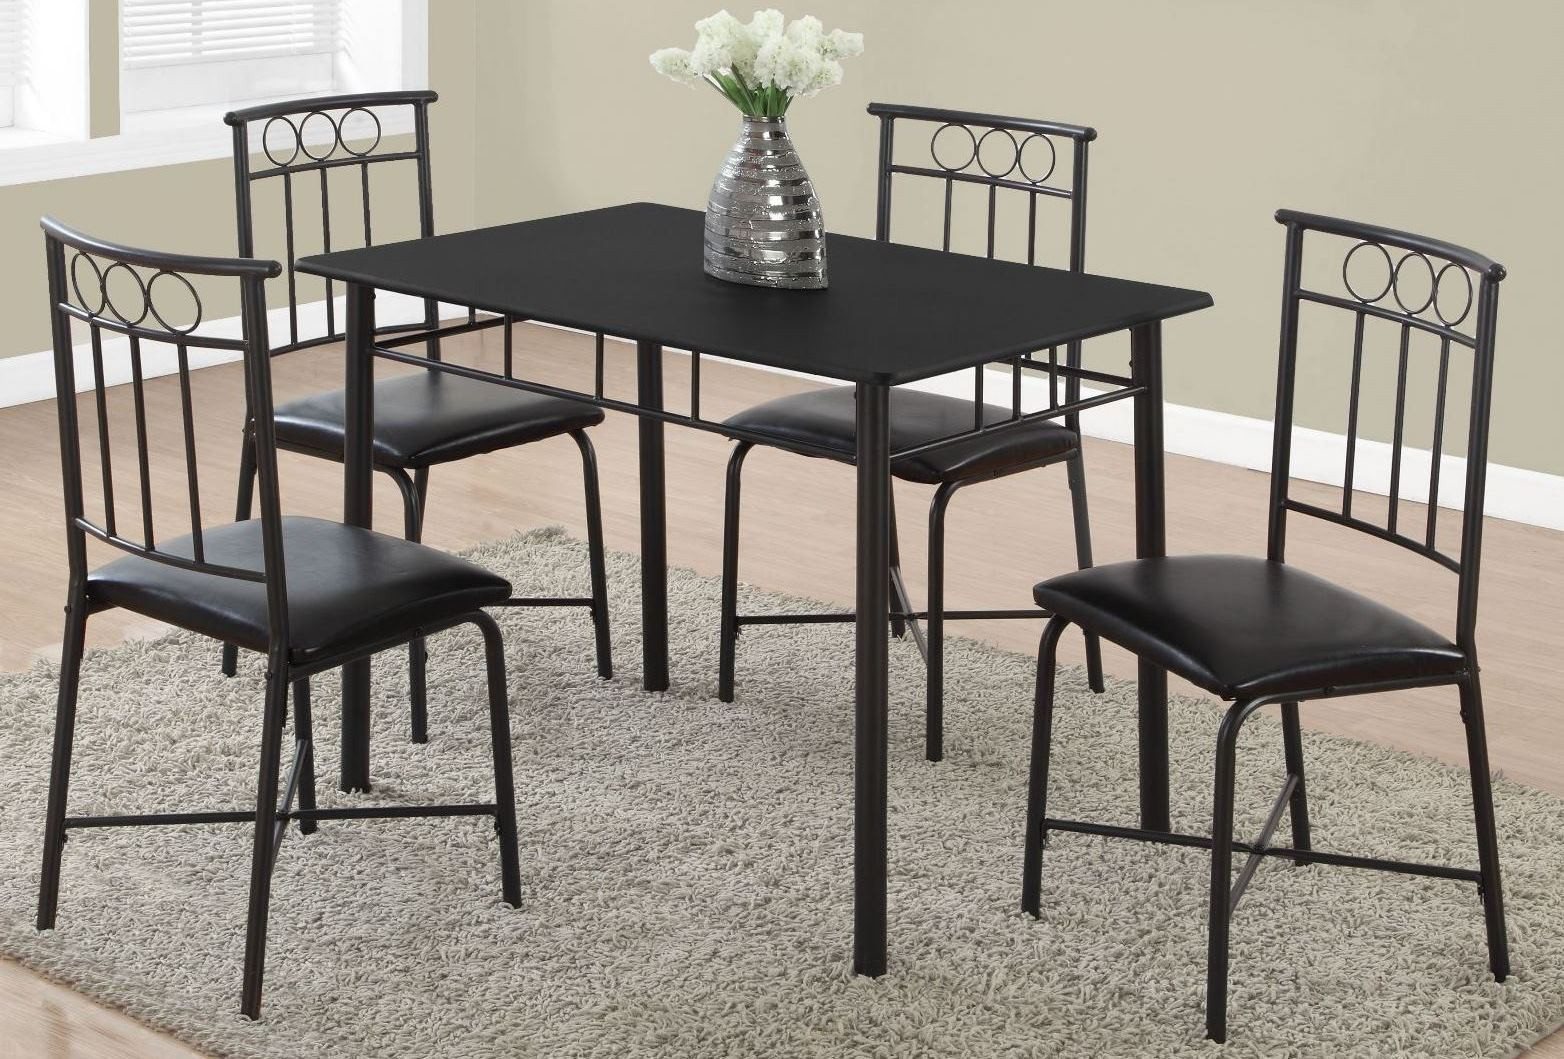 metal dining room sets | Black Metal 5 Piece Dining Room Set, 1018, Monarch